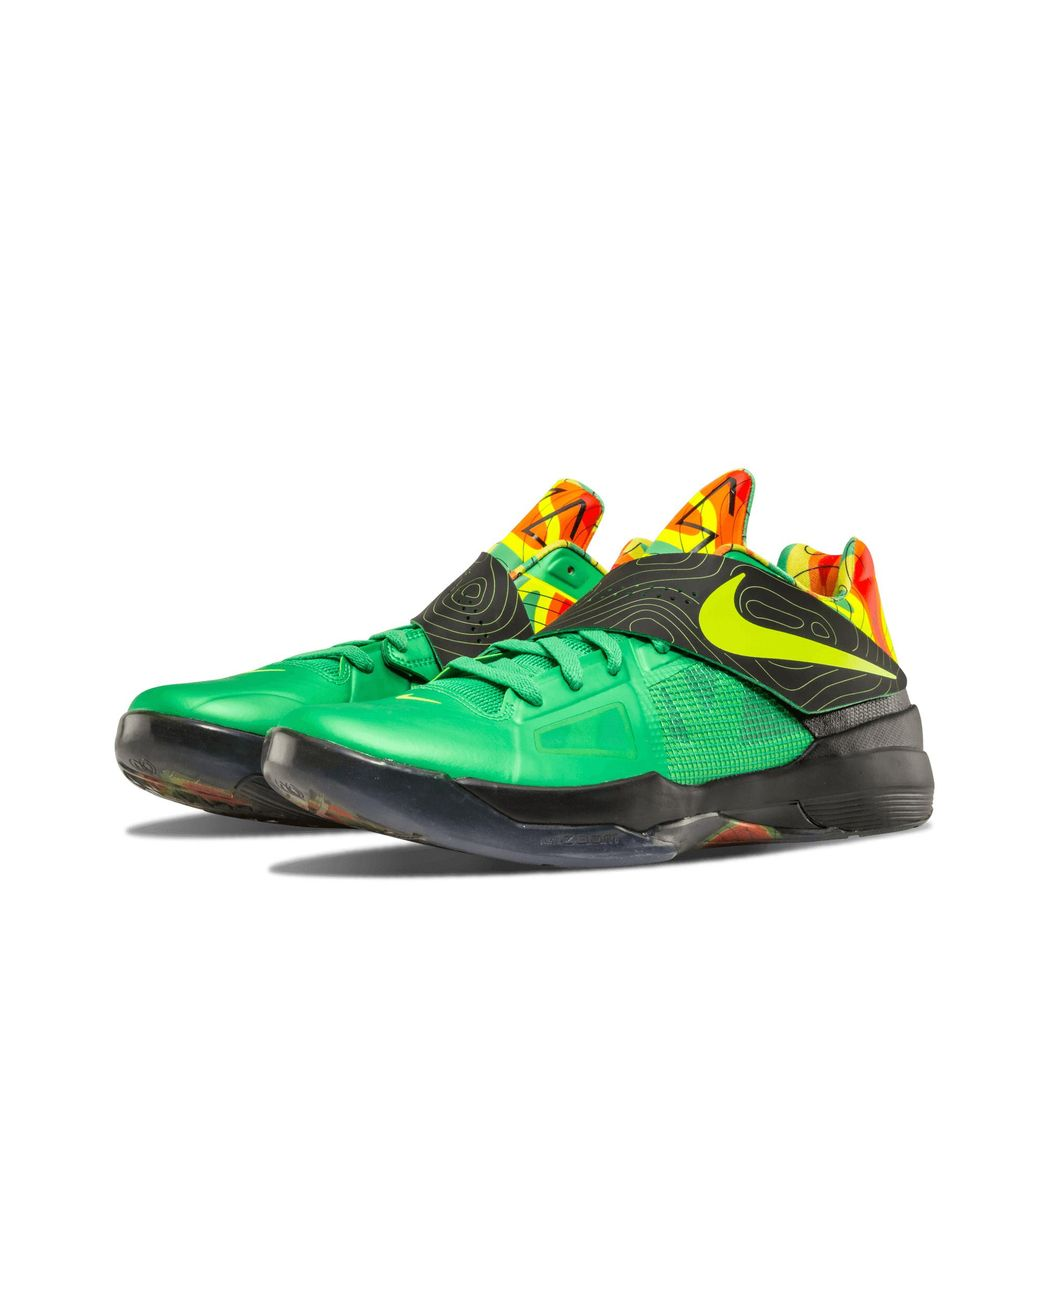 4d7ae1c74b5 Nike Zoom Kd 4 in Green for Men - Save 21% - Lyst